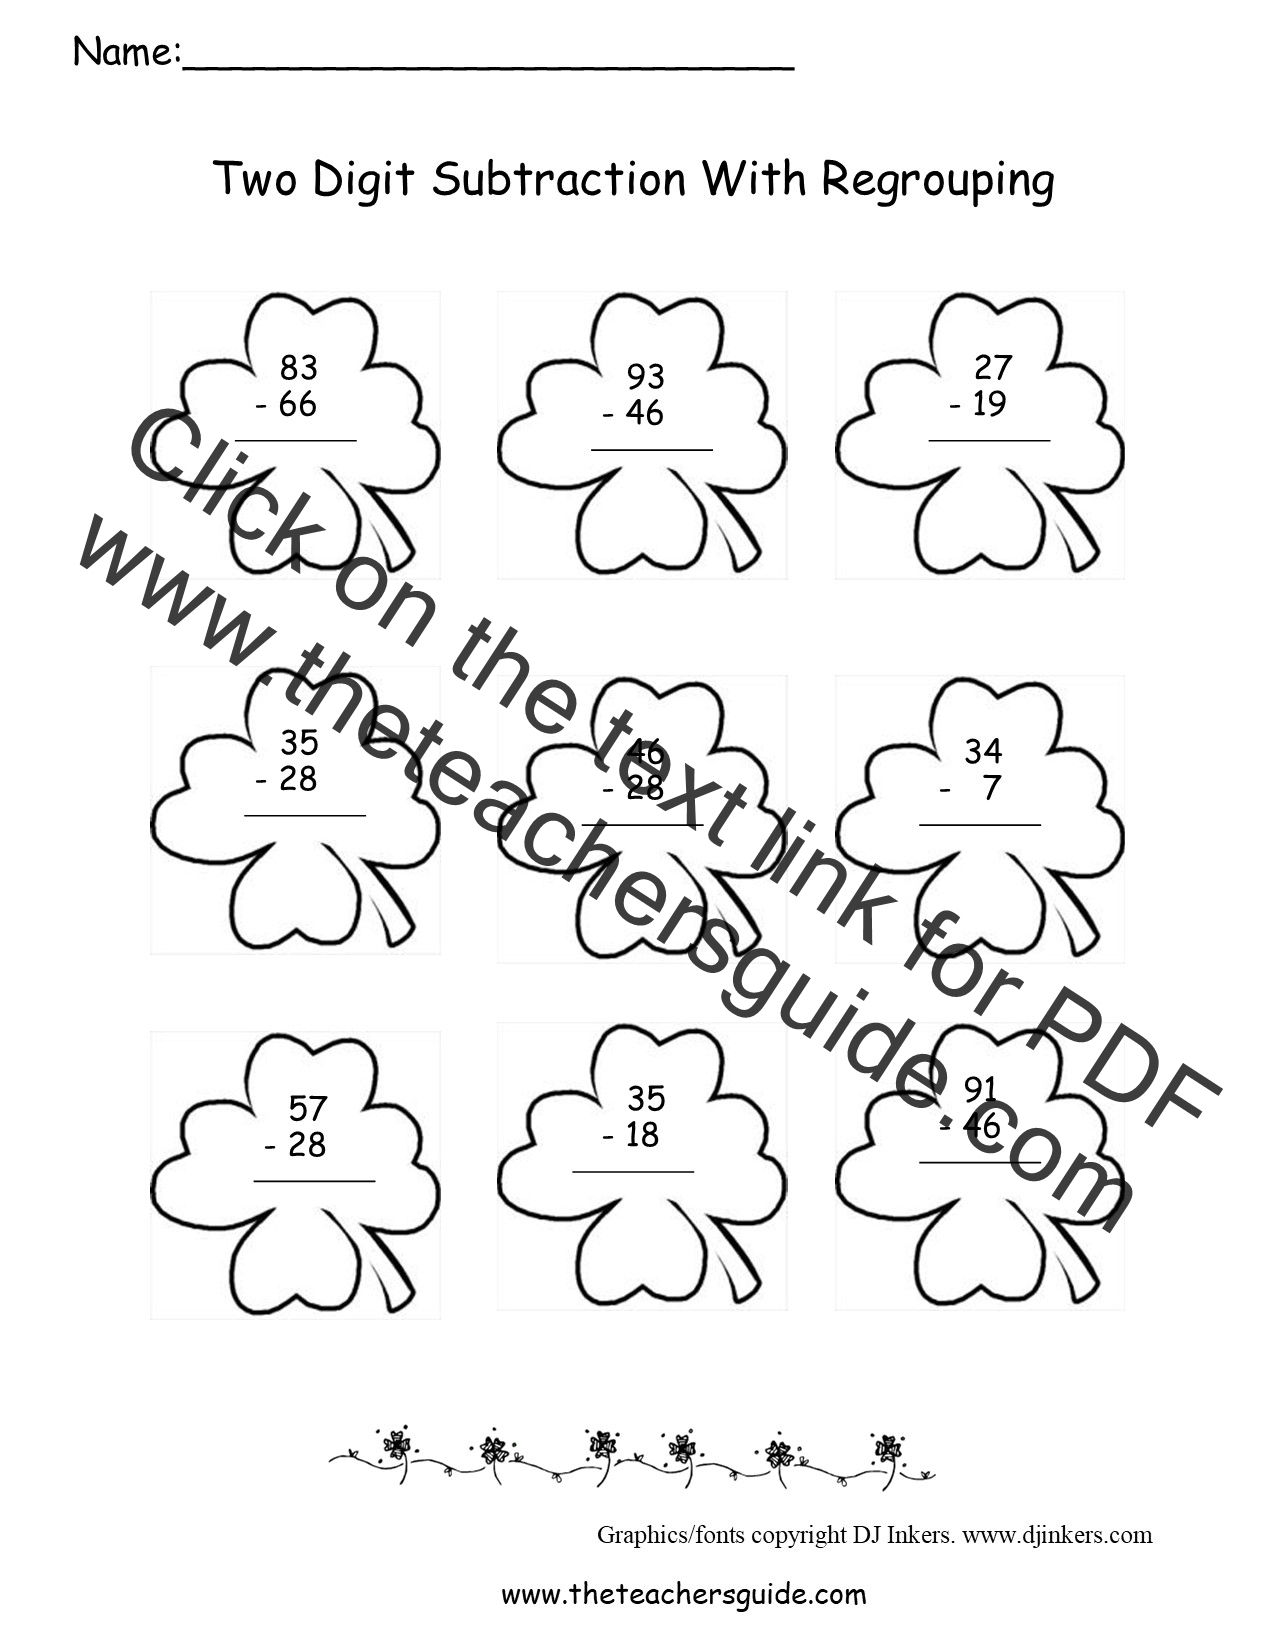 St Patricks Day Printouts from The Teachers Guide – Subtracting 2 Digit Numbers with Regrouping Worksheets